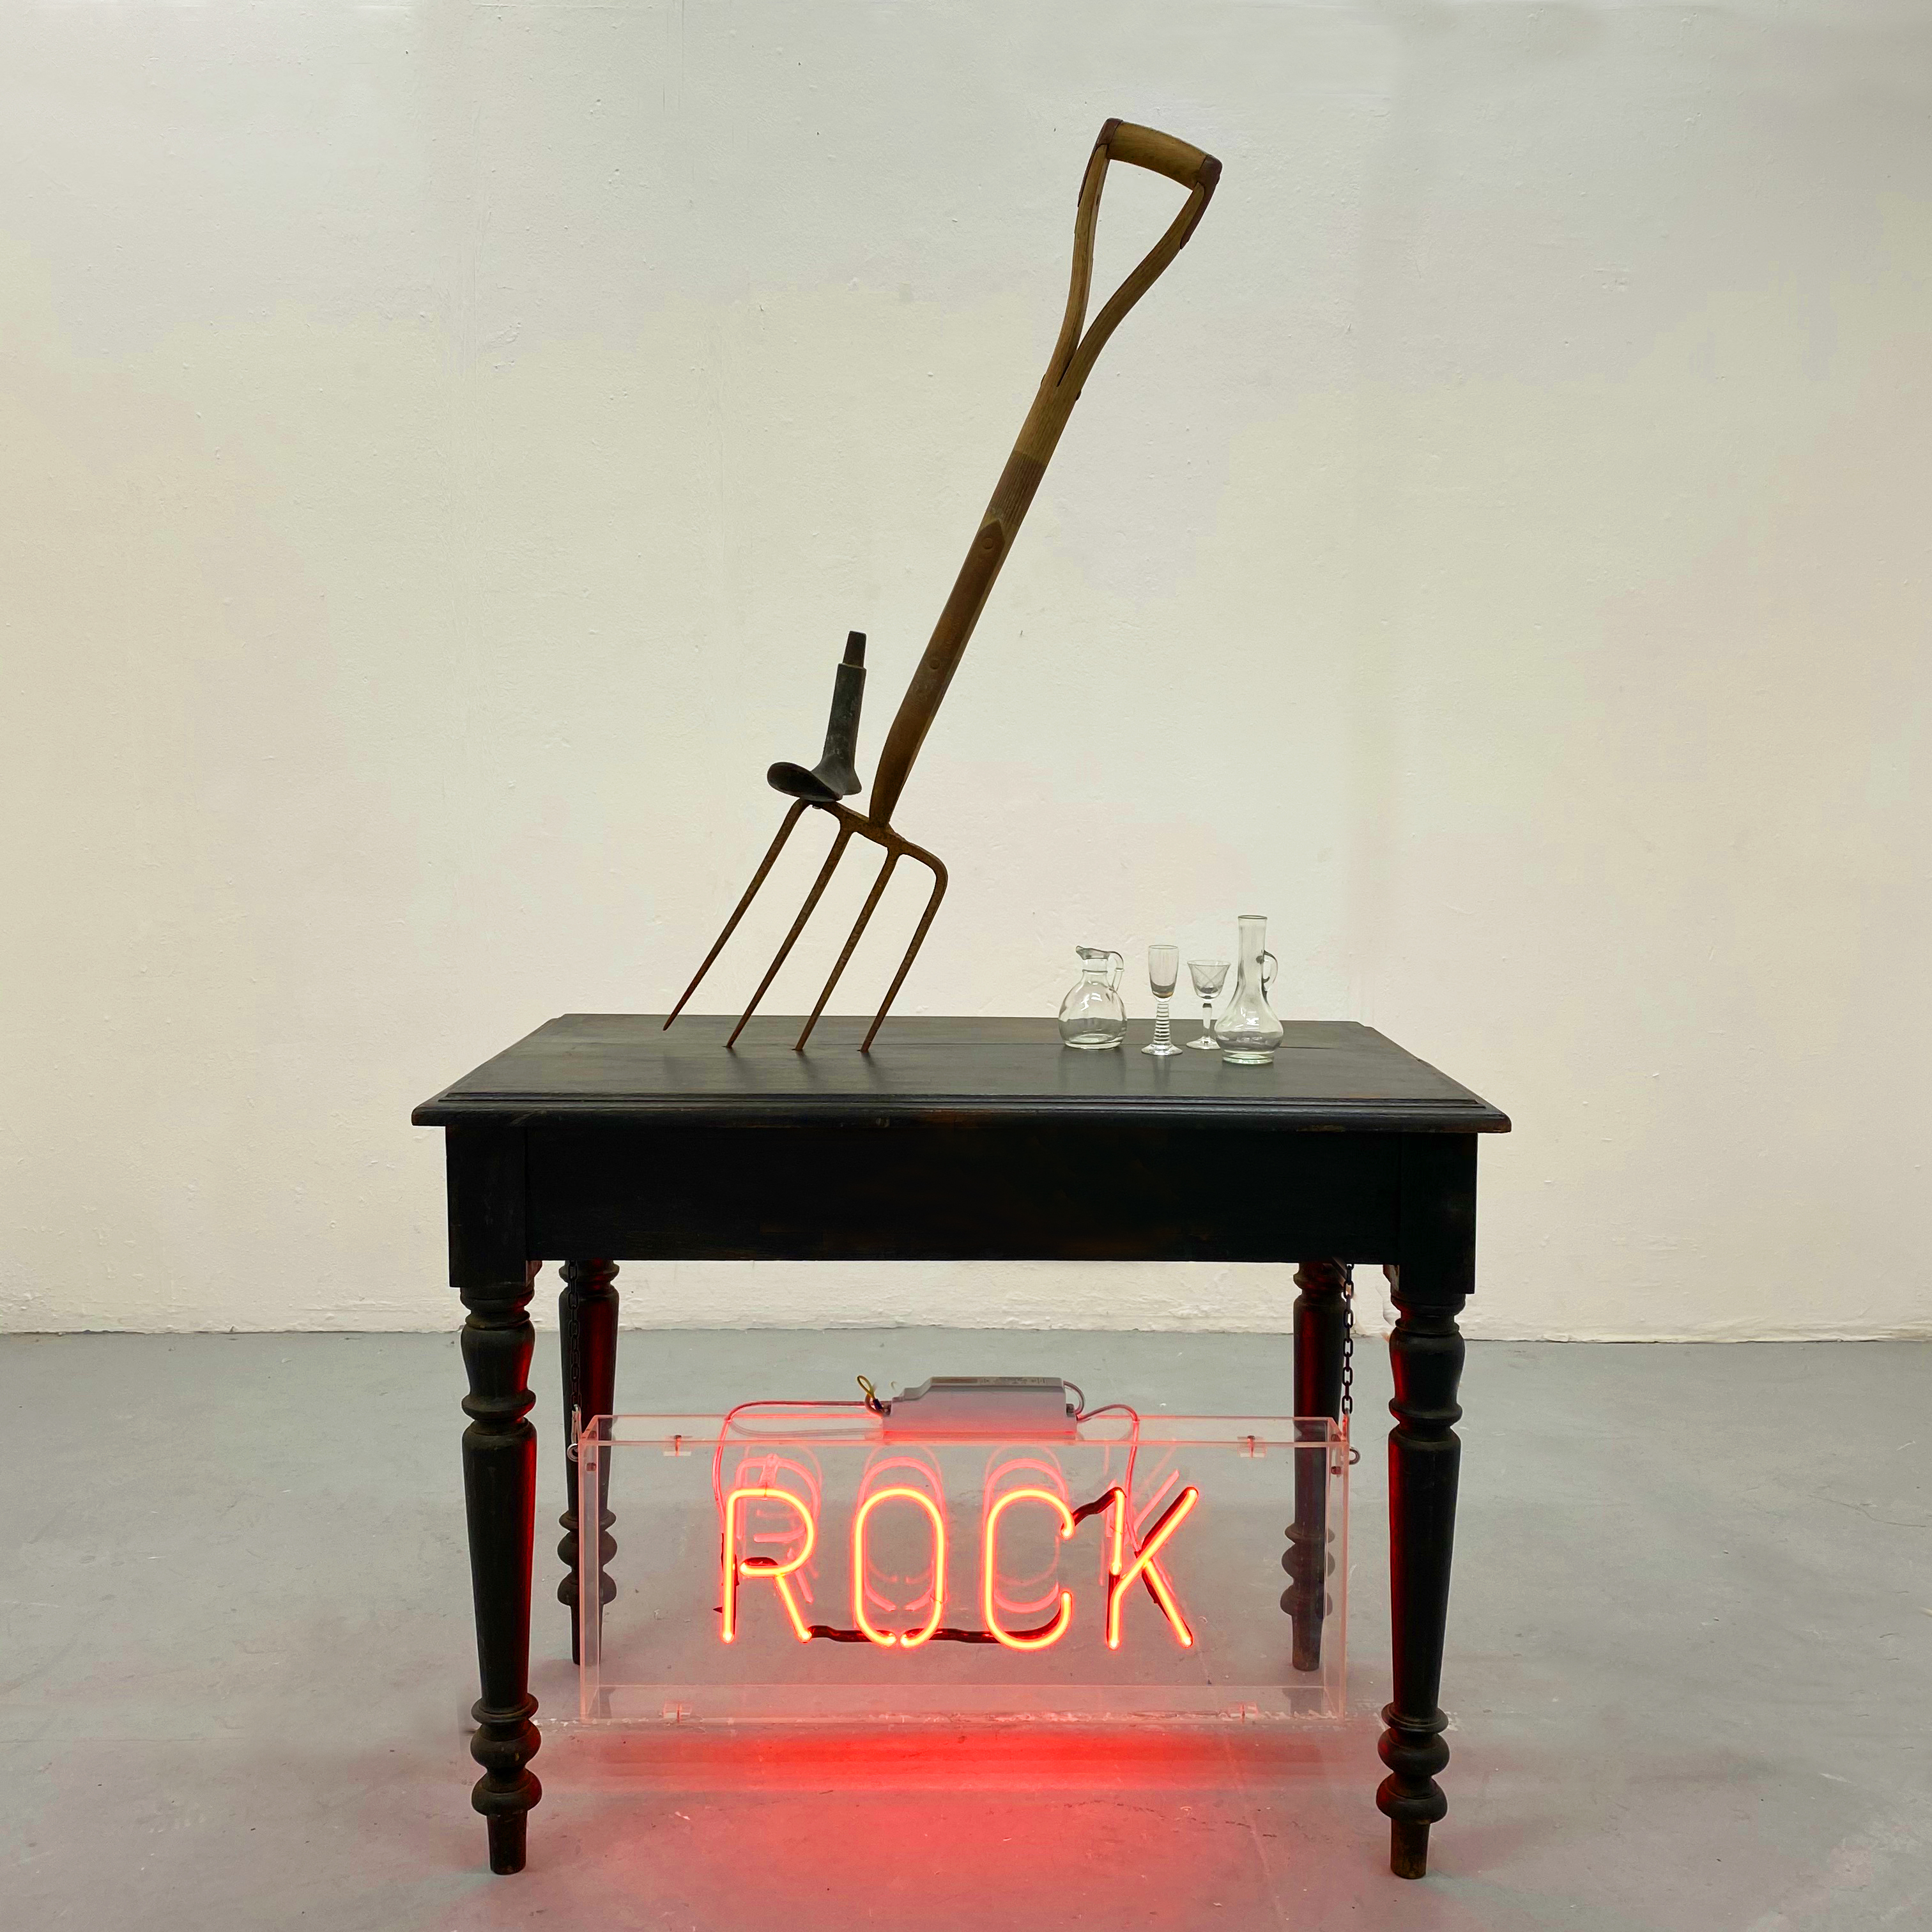 Rock. 2020. Installation. Found objects.